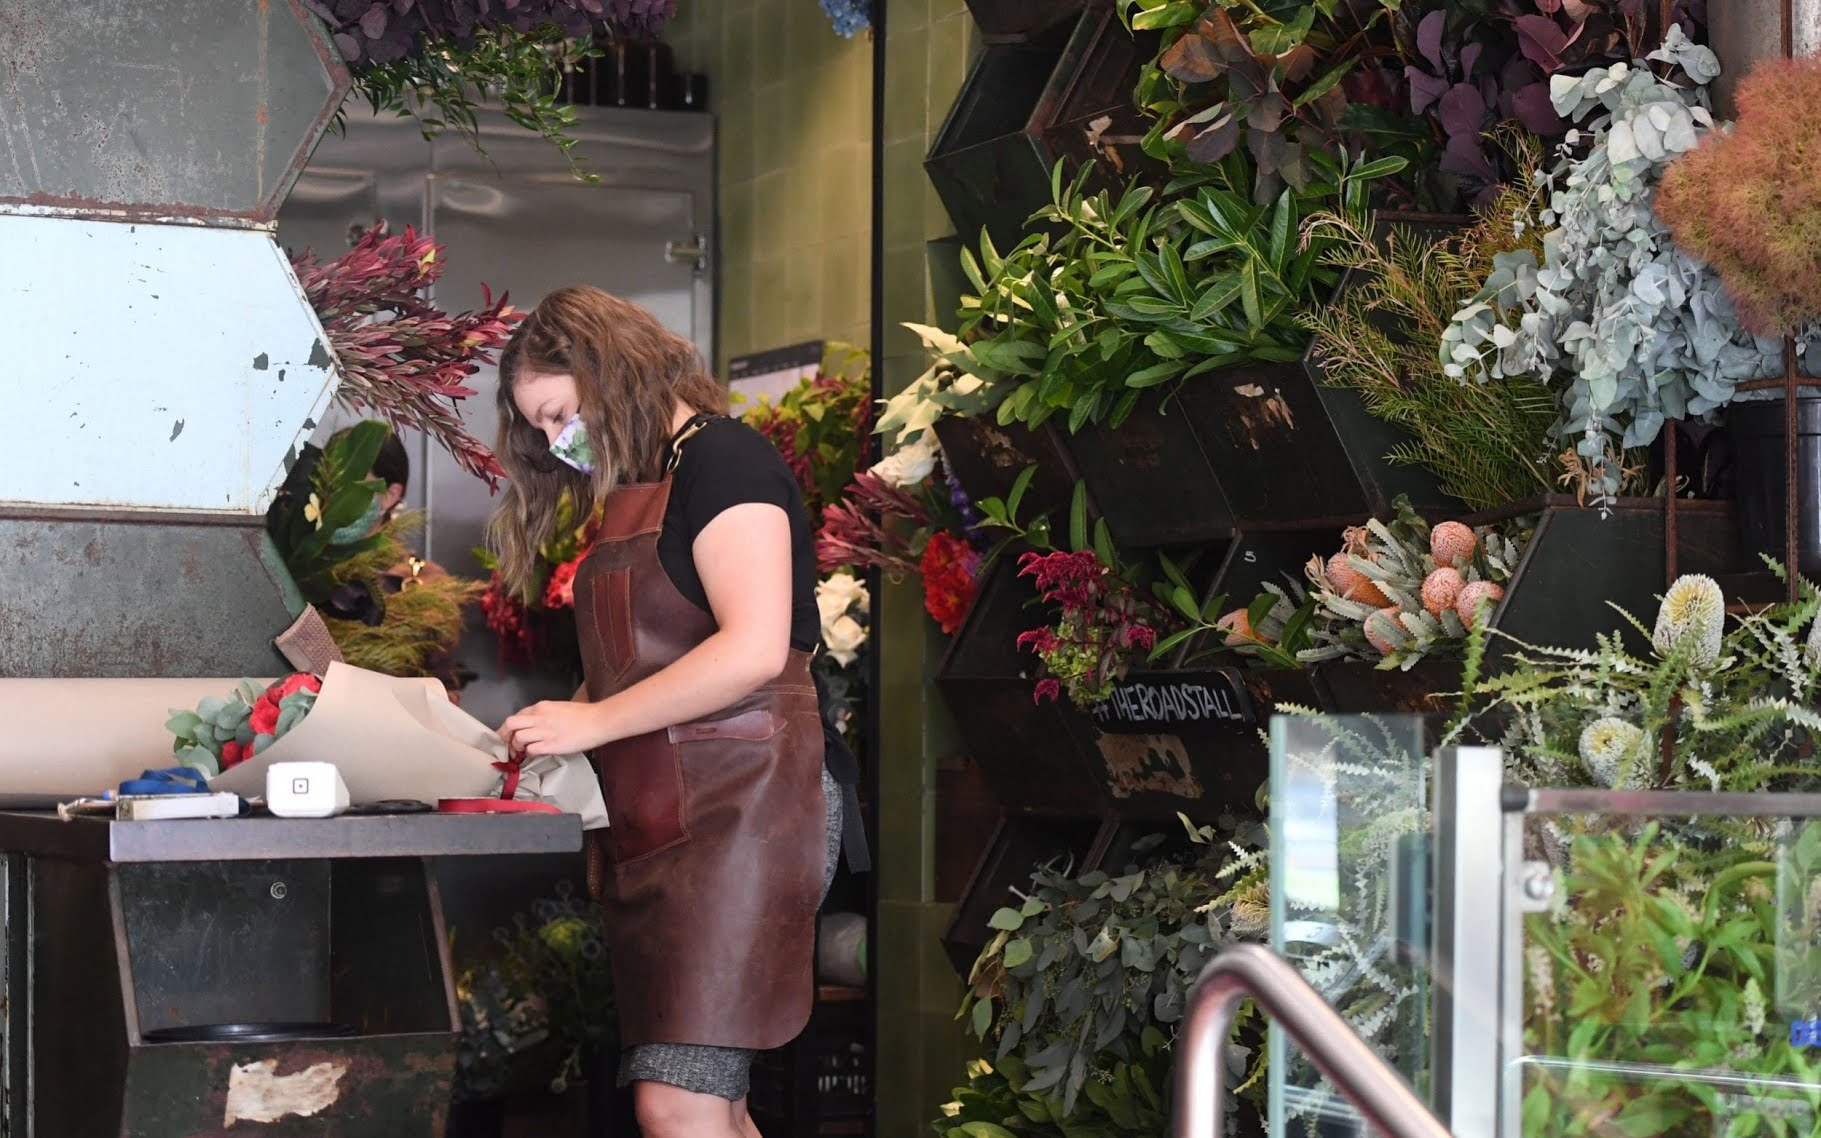 Mother's Day flowers may not arrive as florists run out of delivery slots